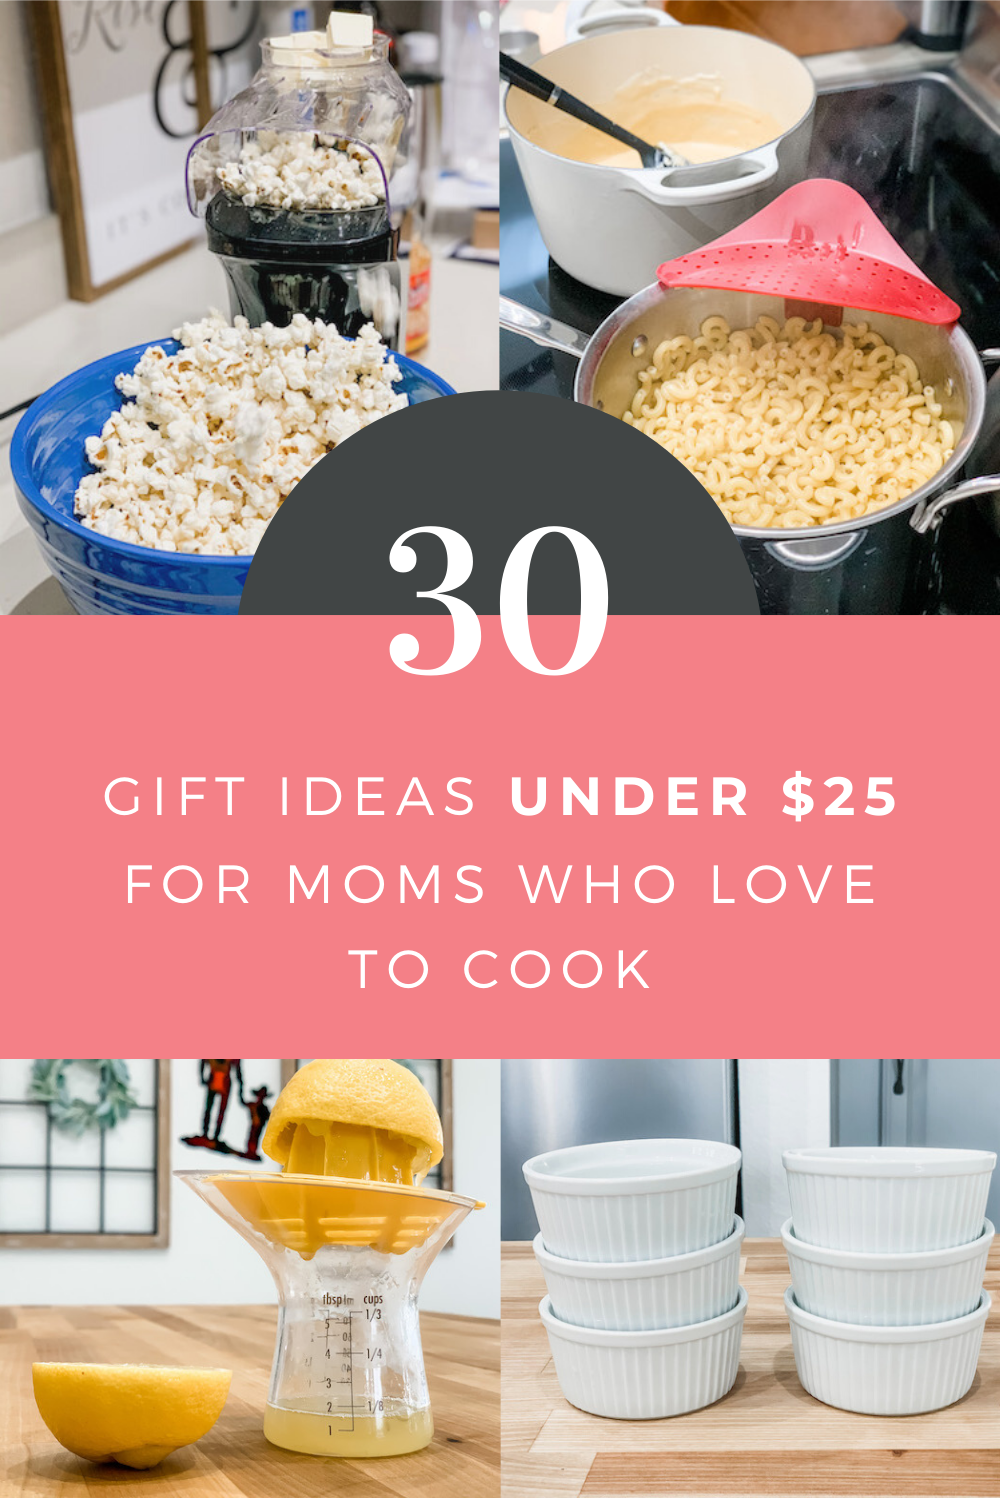 Gift Ideas Under $25 For Moms Who Love Cooking